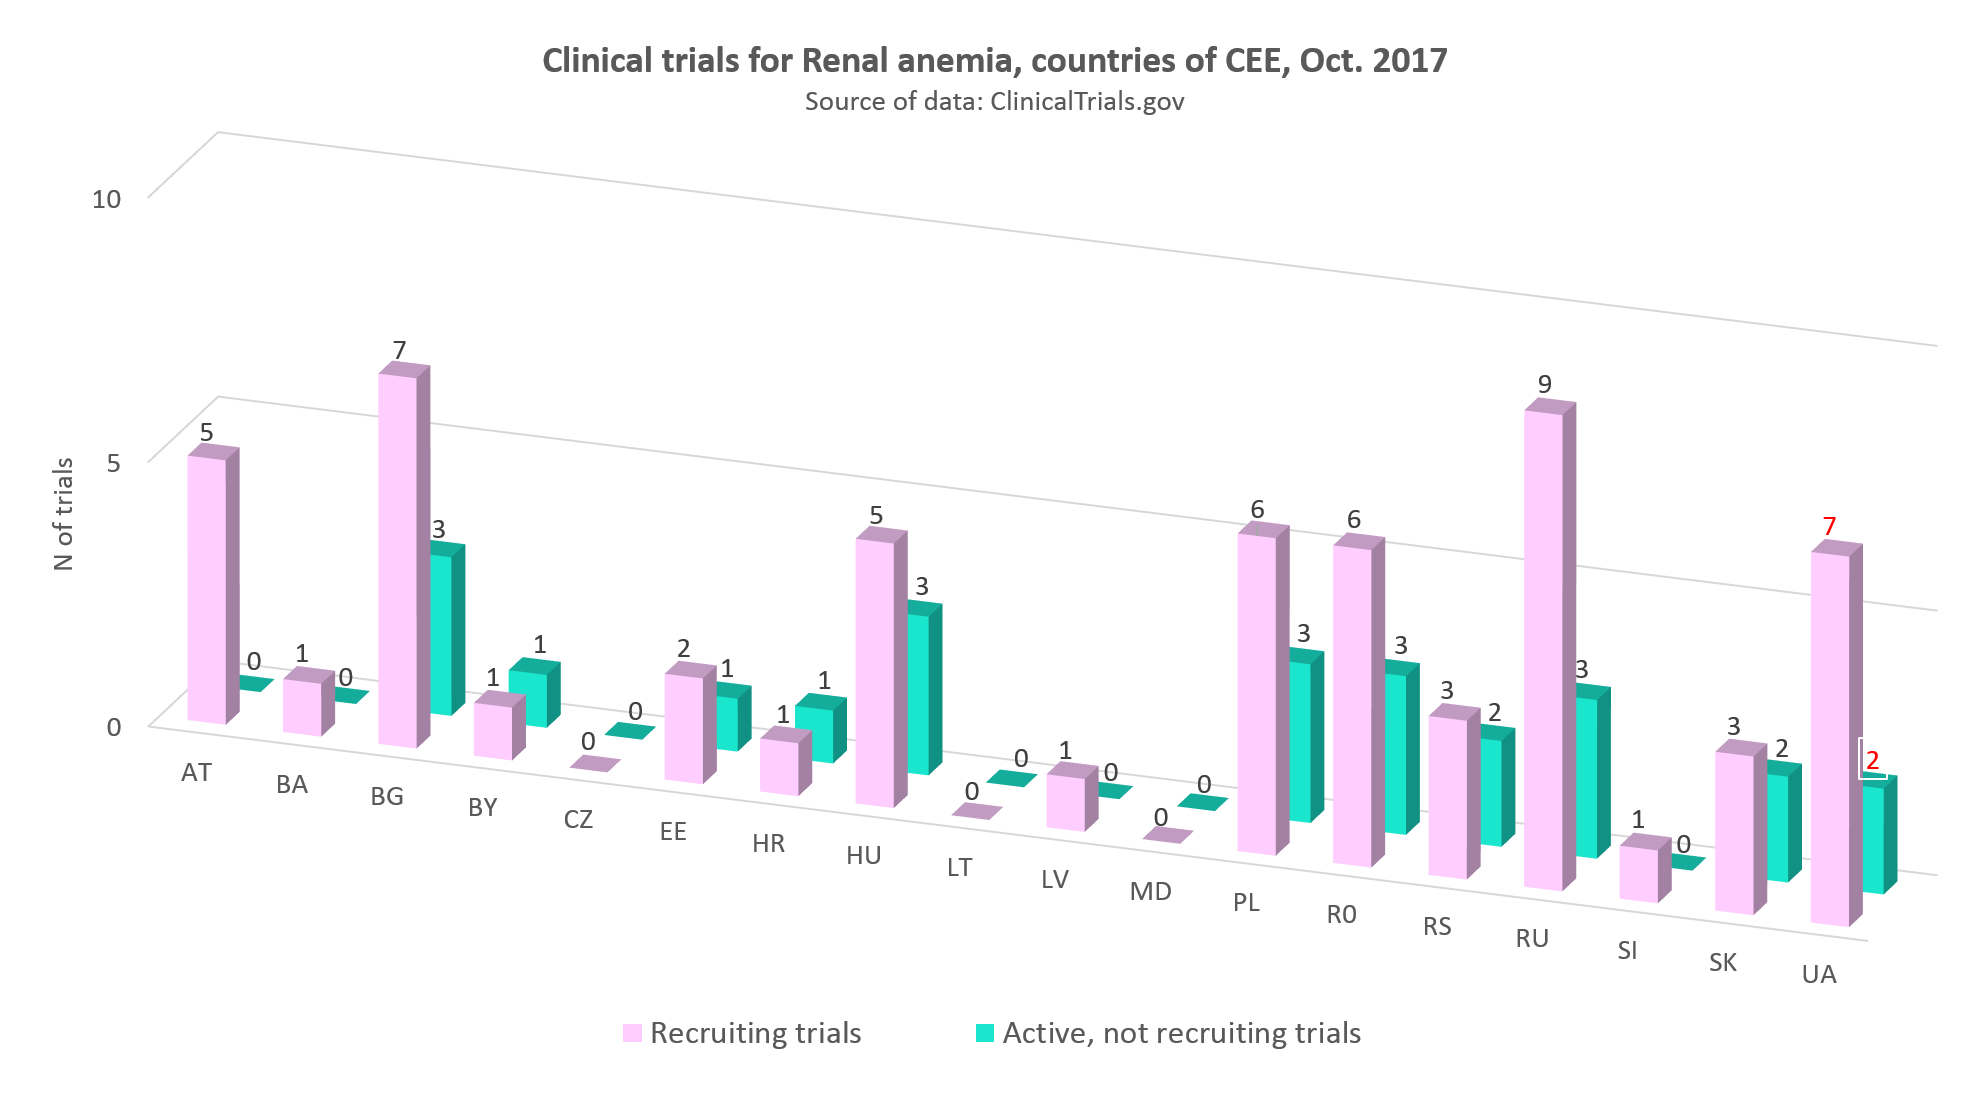 Clinical trials for renal anemia in the countries of CEE, Оctober 2017